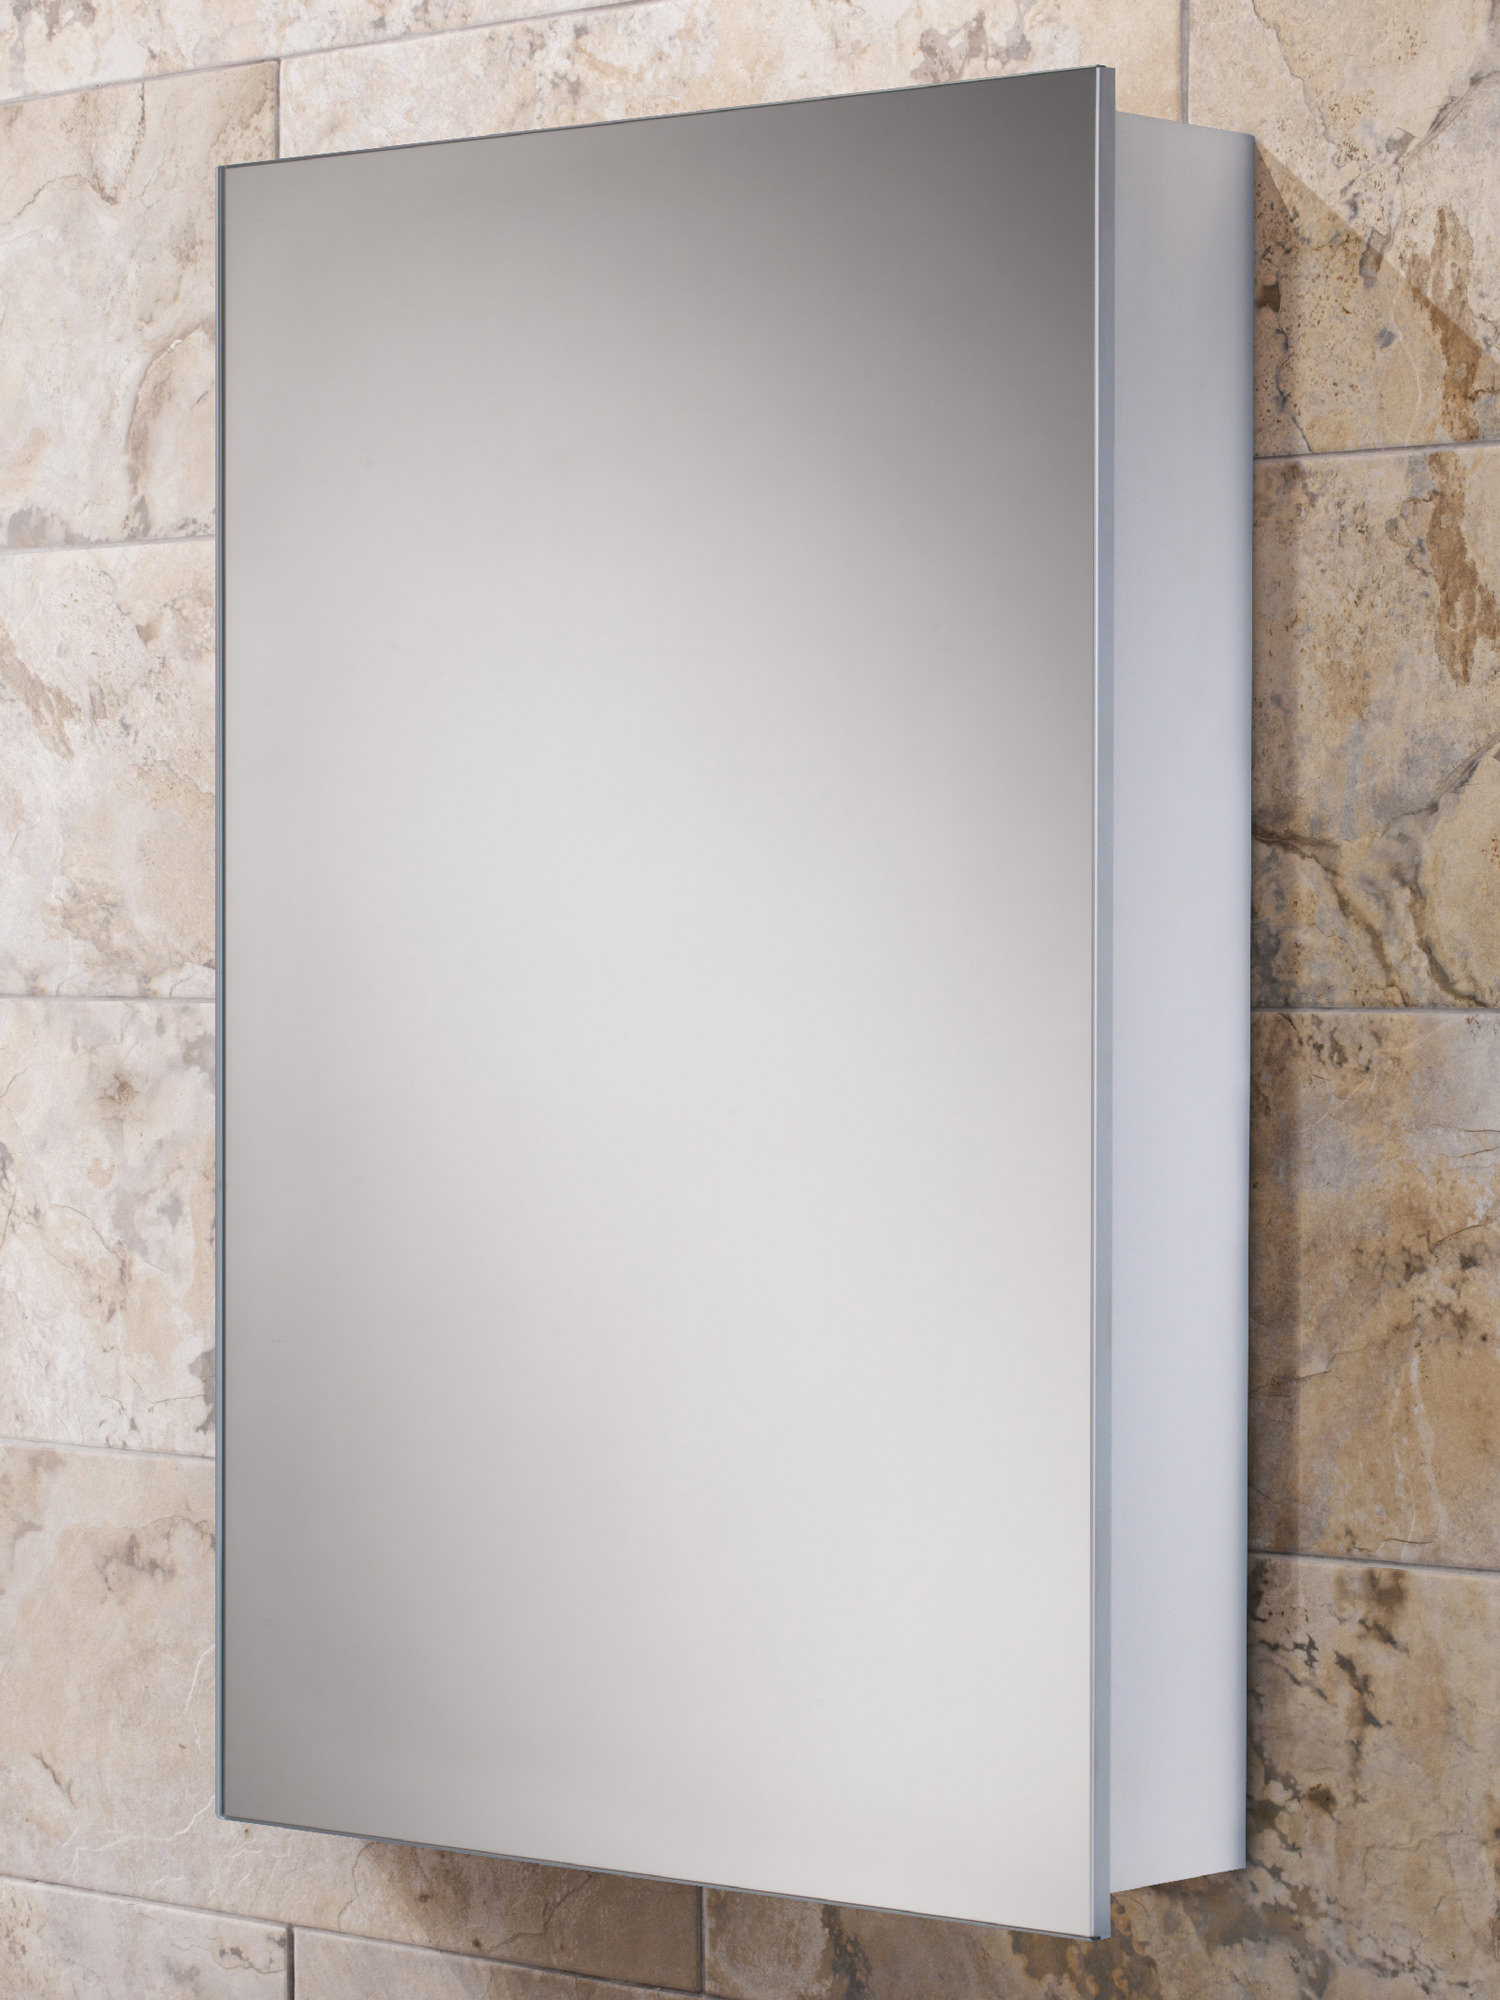 Hib callisto slim line aluminium mirrored cabinet 500 x for Slim mirrored bathroom cabinet